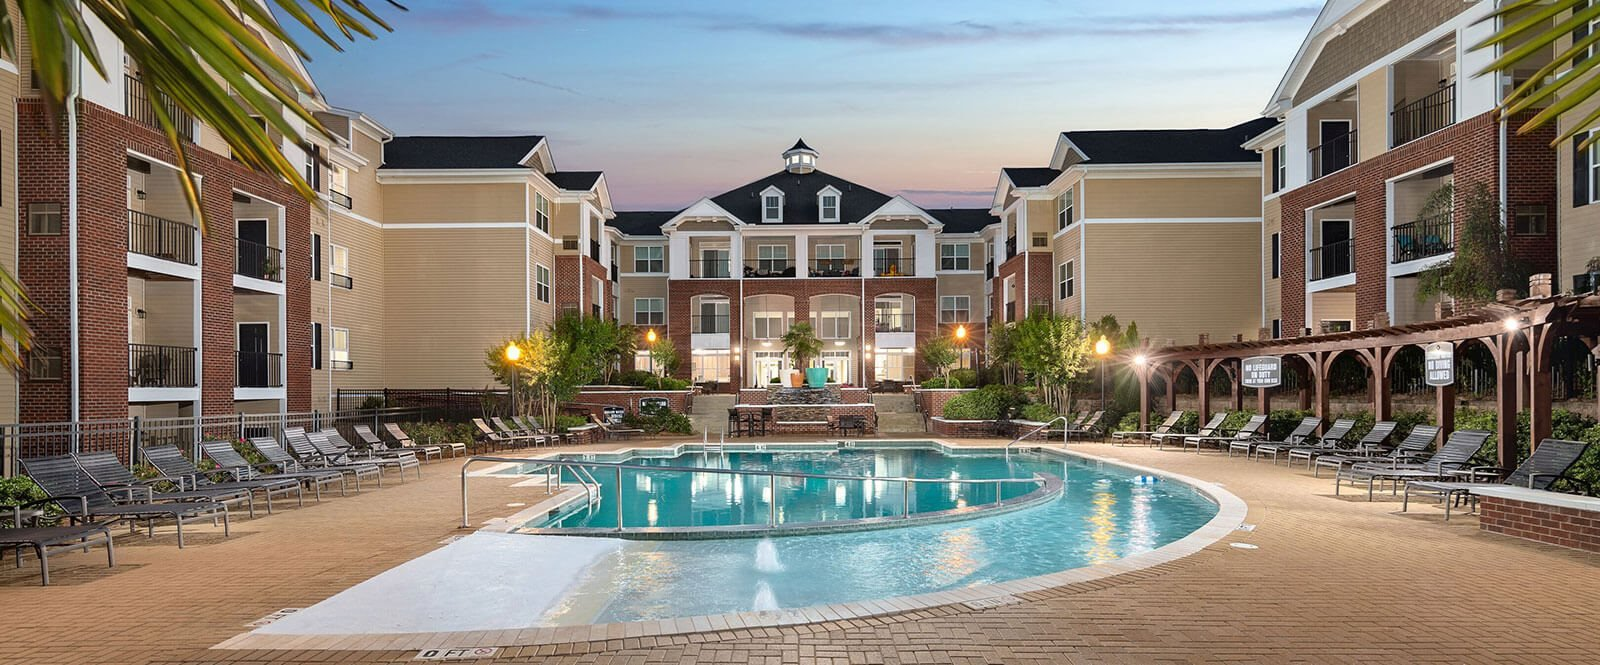 Extensive Resort Inspired Pool Deck at Abberly CenterPointe Apartment Homes by HHHunt, Virginia